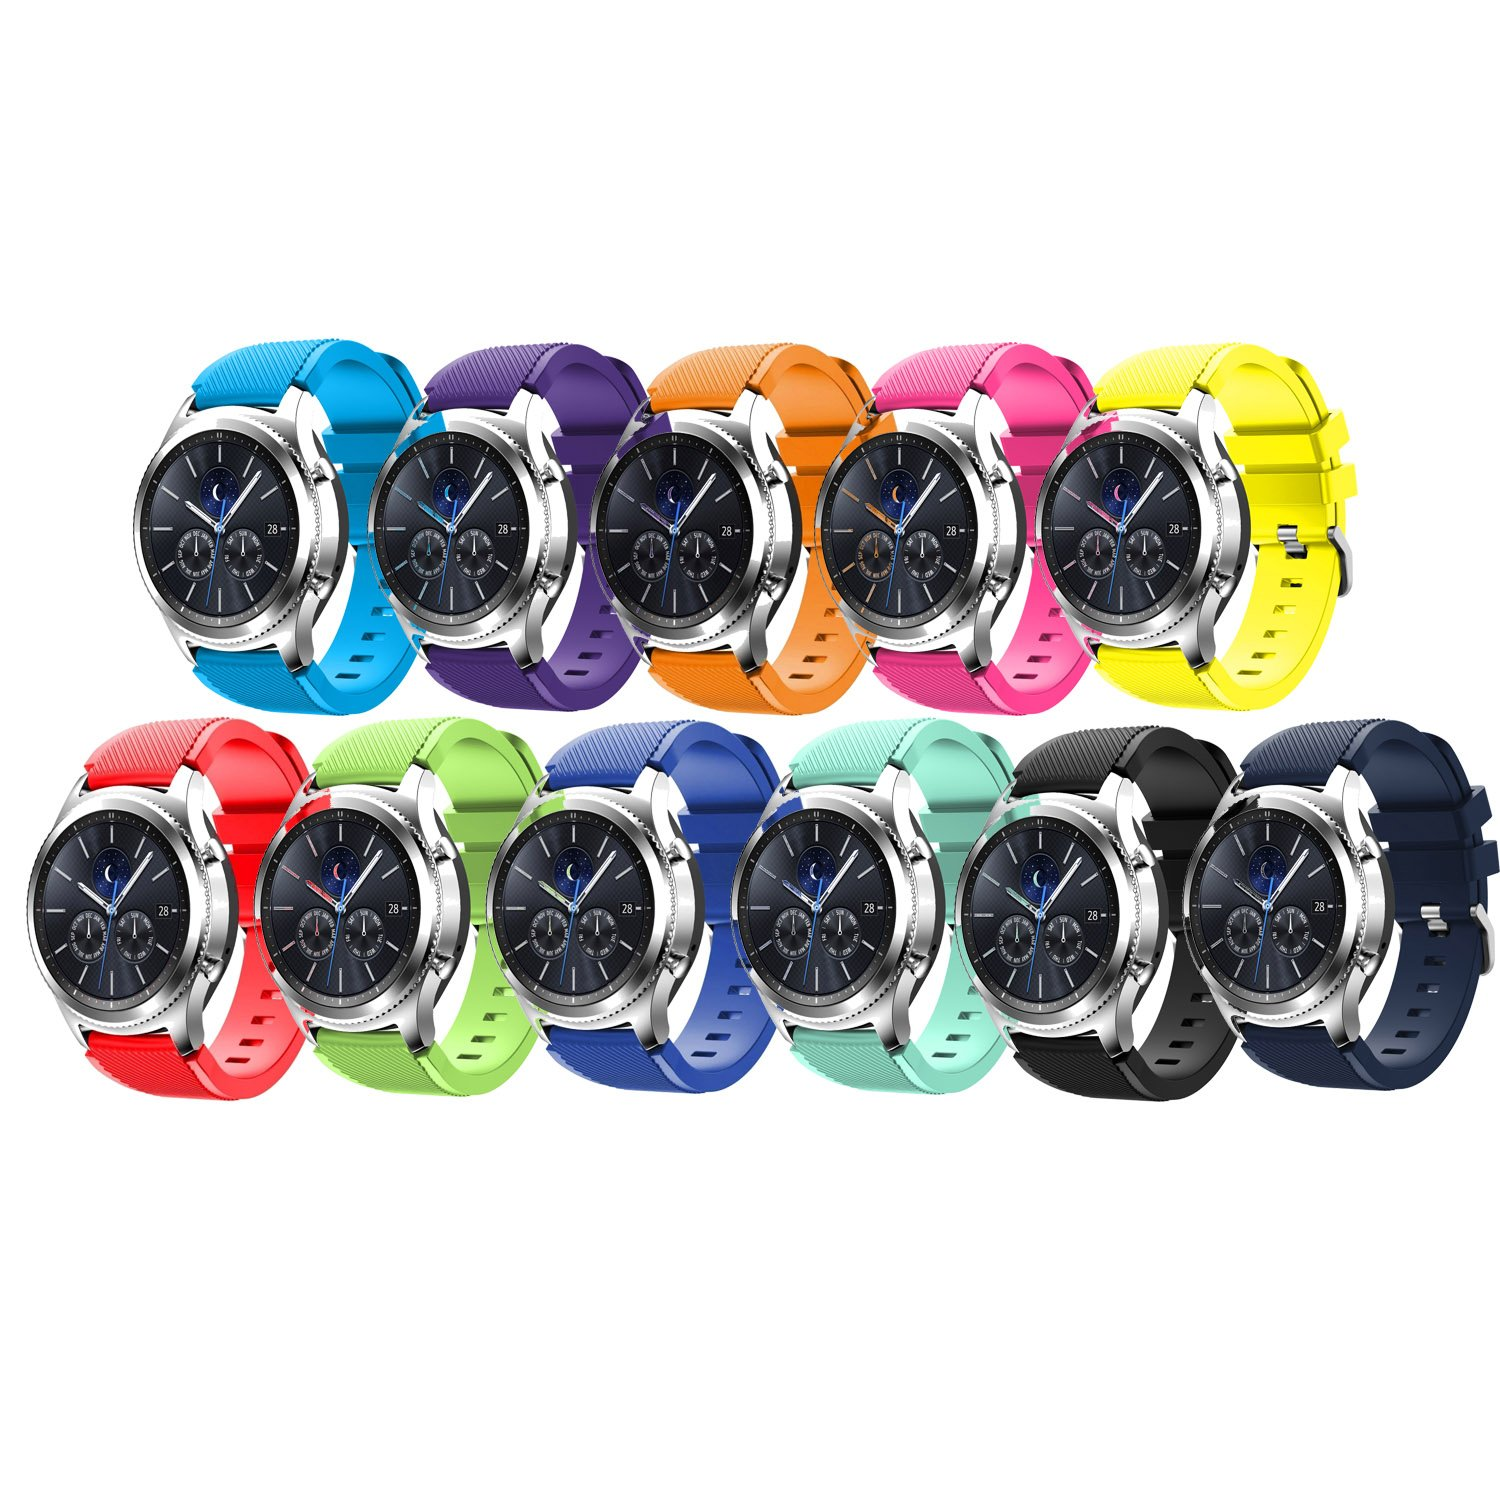 Tabcover for Gear S3 Frontier Correa,11 Colors 22mm Soft Silicone ...